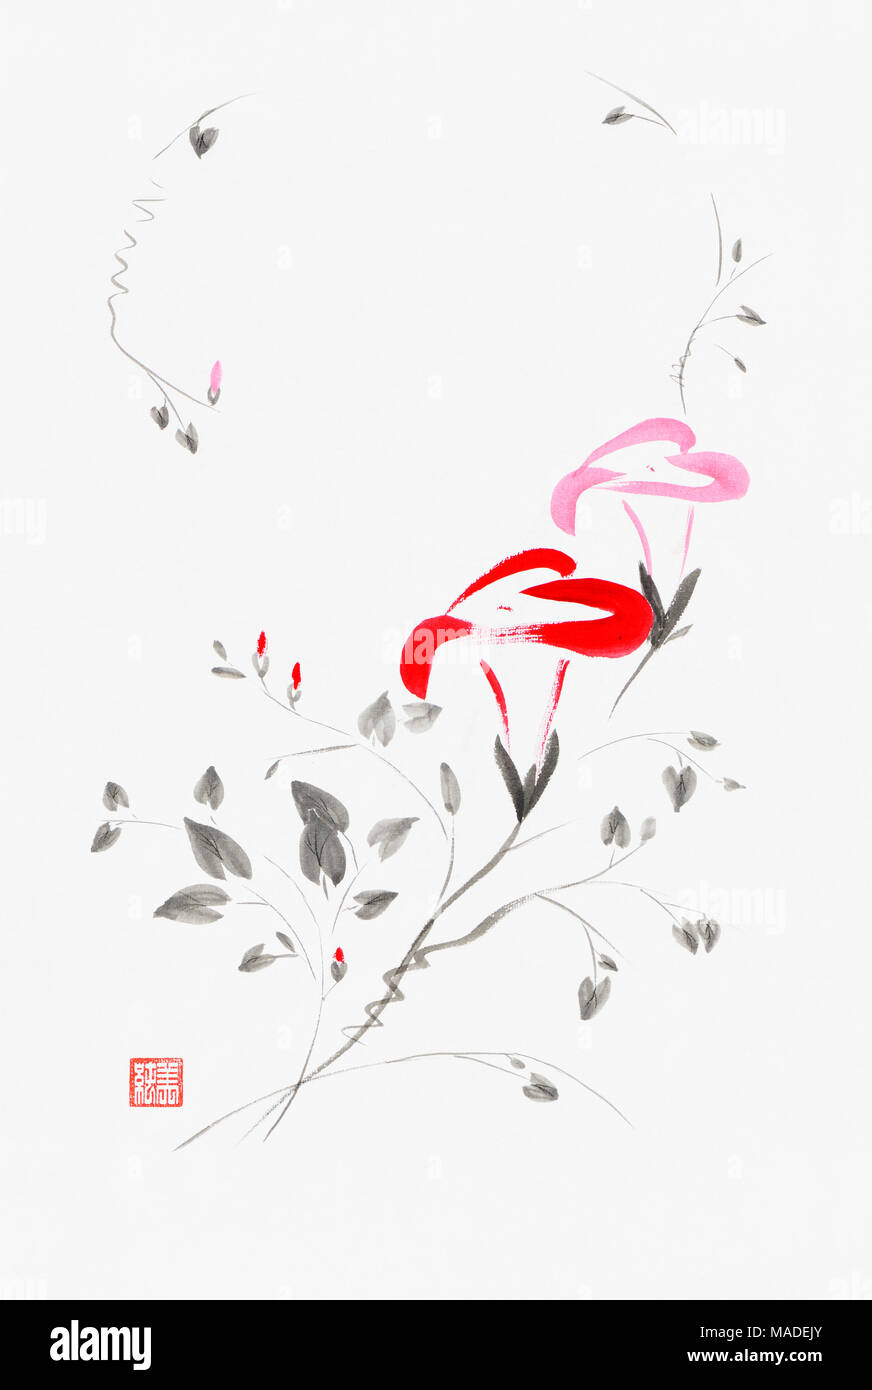 Beautiful red and pink Morning Glory flowers artistic oriental style illustration, Japanese Zen Sumi-e ink painting on white rice paper background Stock Photo